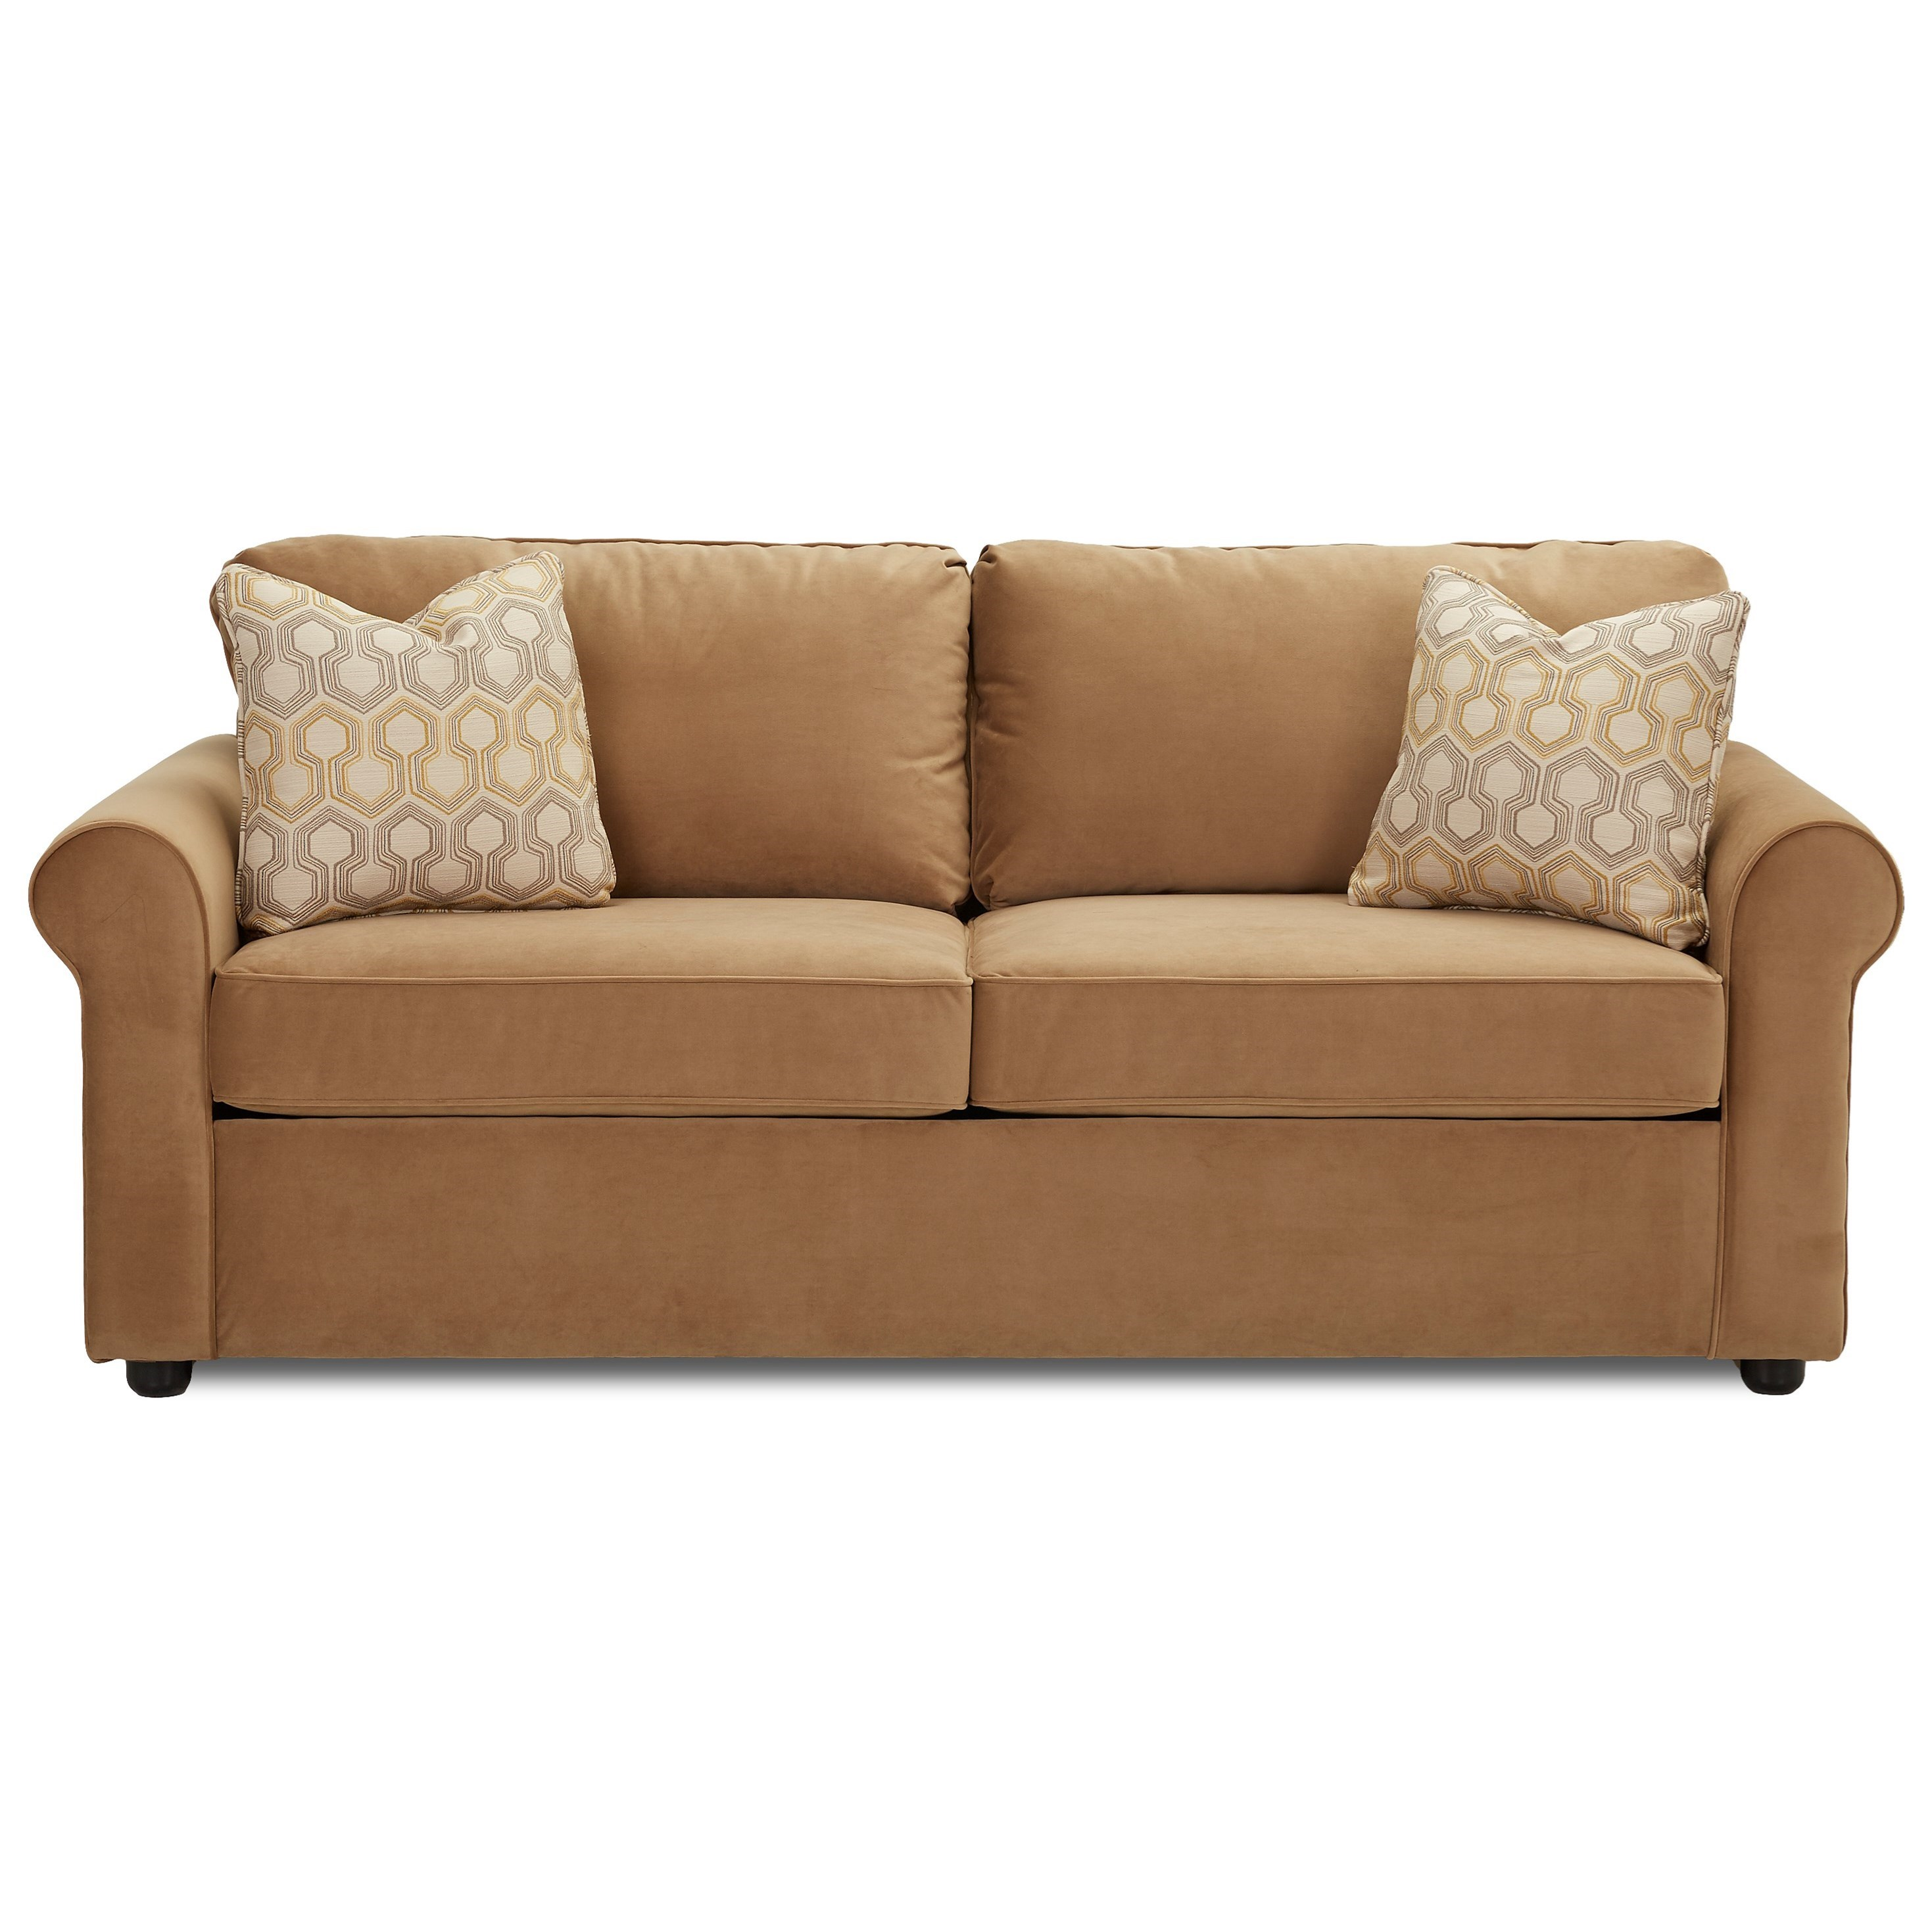 Brighton Enso Memory Foam Queen Sleeper by Klaussner at Lagniappe Home Store